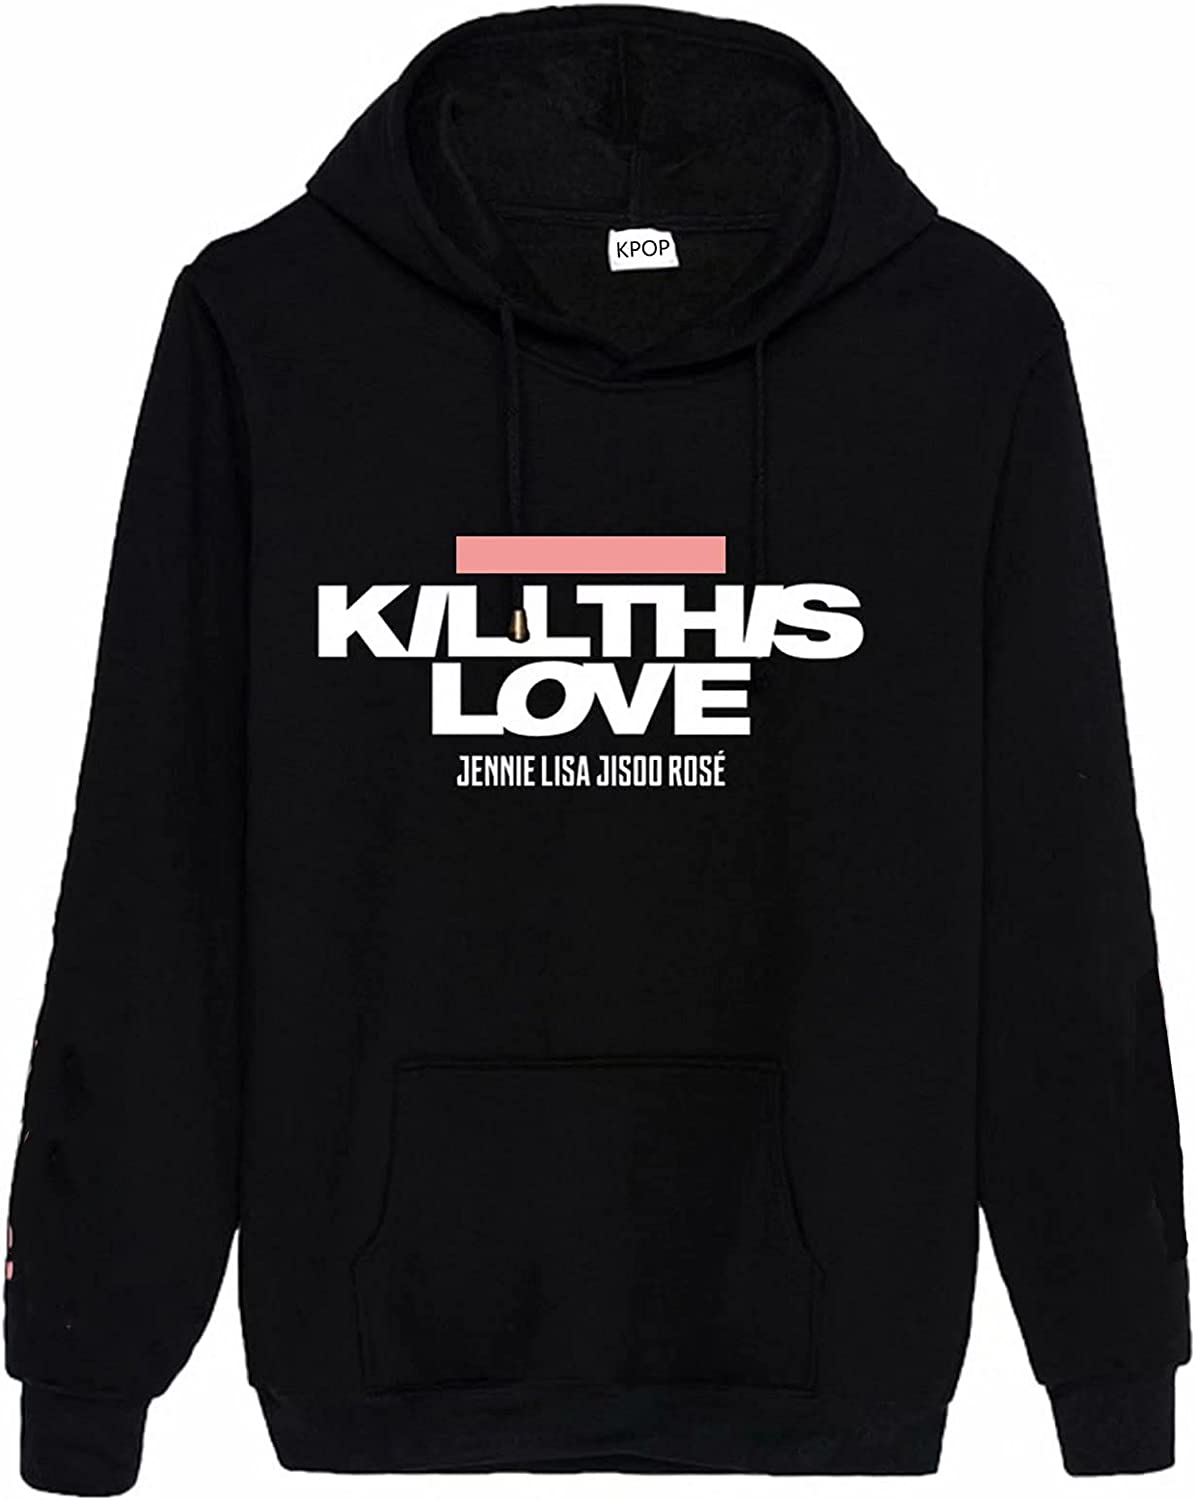 KPOP Hoodie New At Fort Worth Mall the price of surprise Album Kill This Jisoo R Love Jennie Lisa Sweater